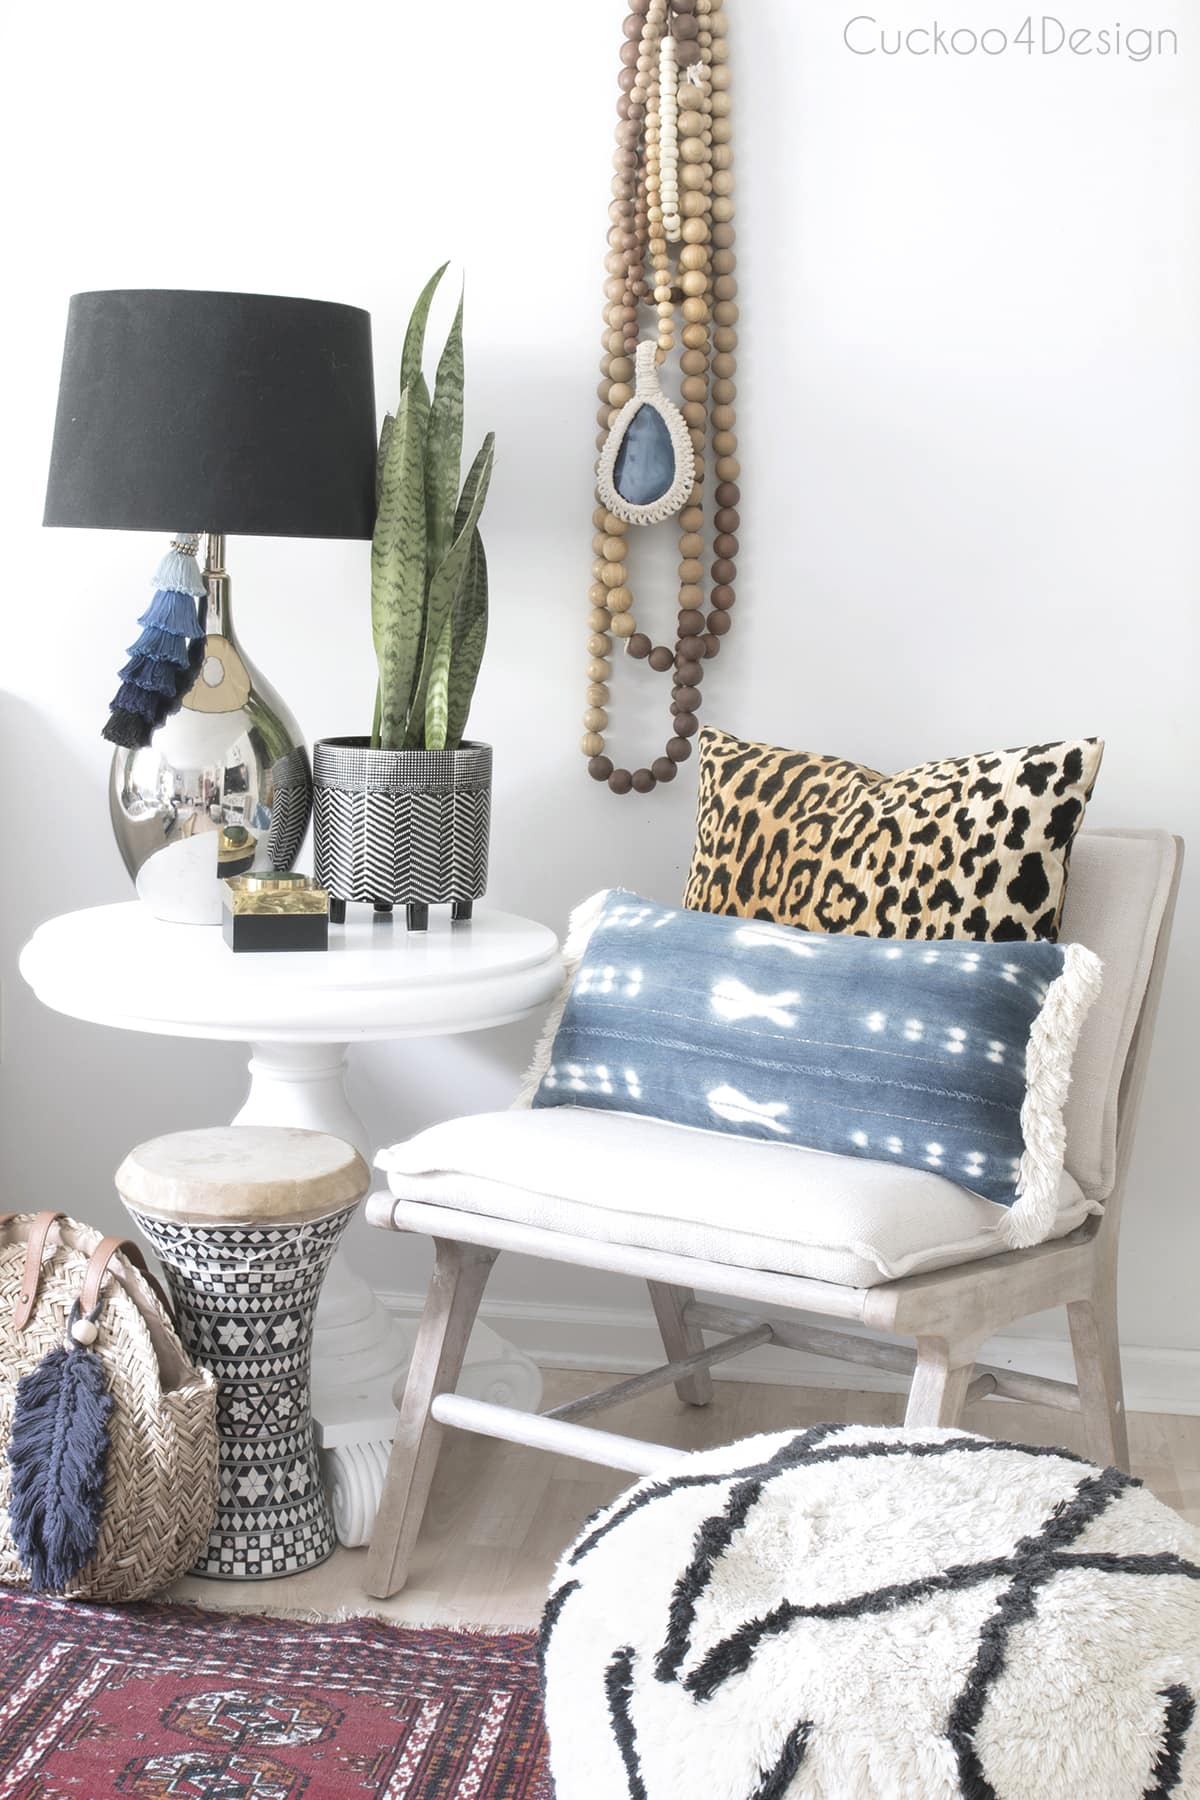 Moroccan living room pouf in black and white pattern